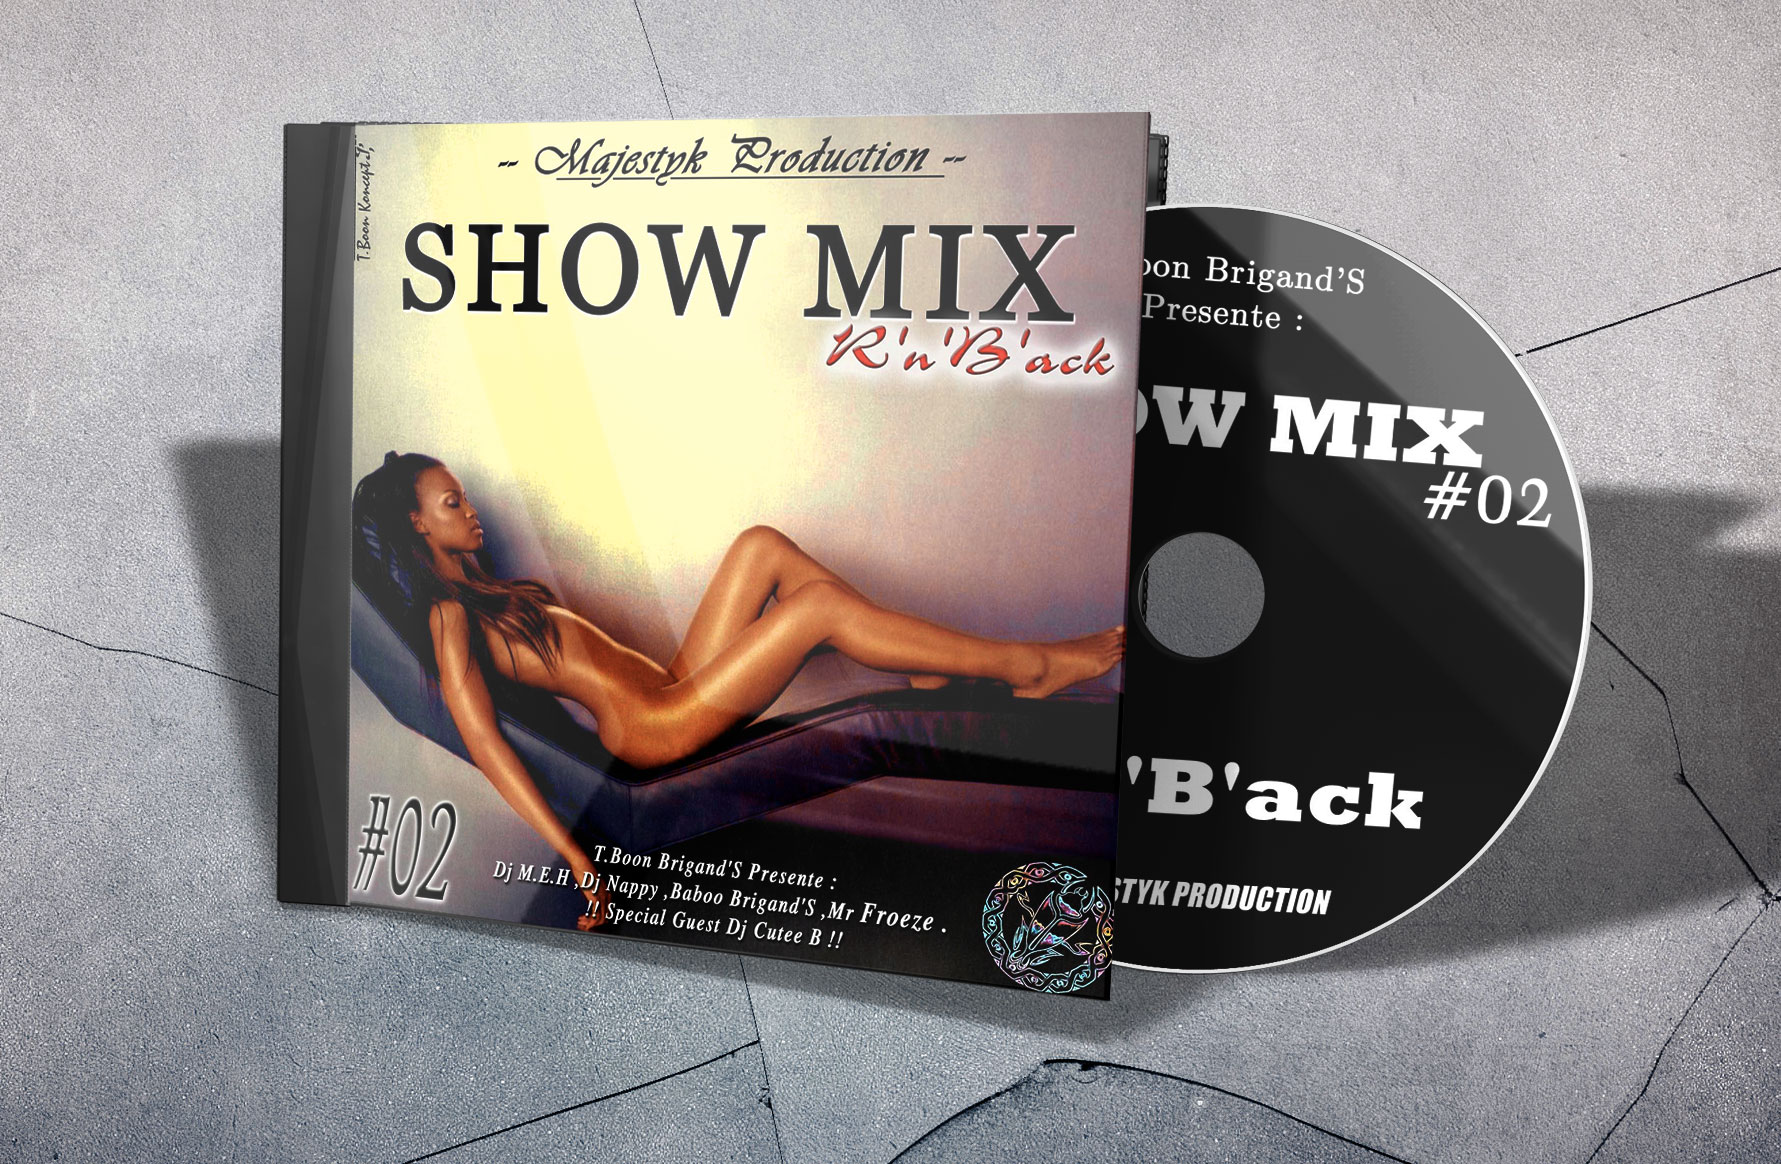 Show Mix R'n'B'ack by T.Boon Brigands'S